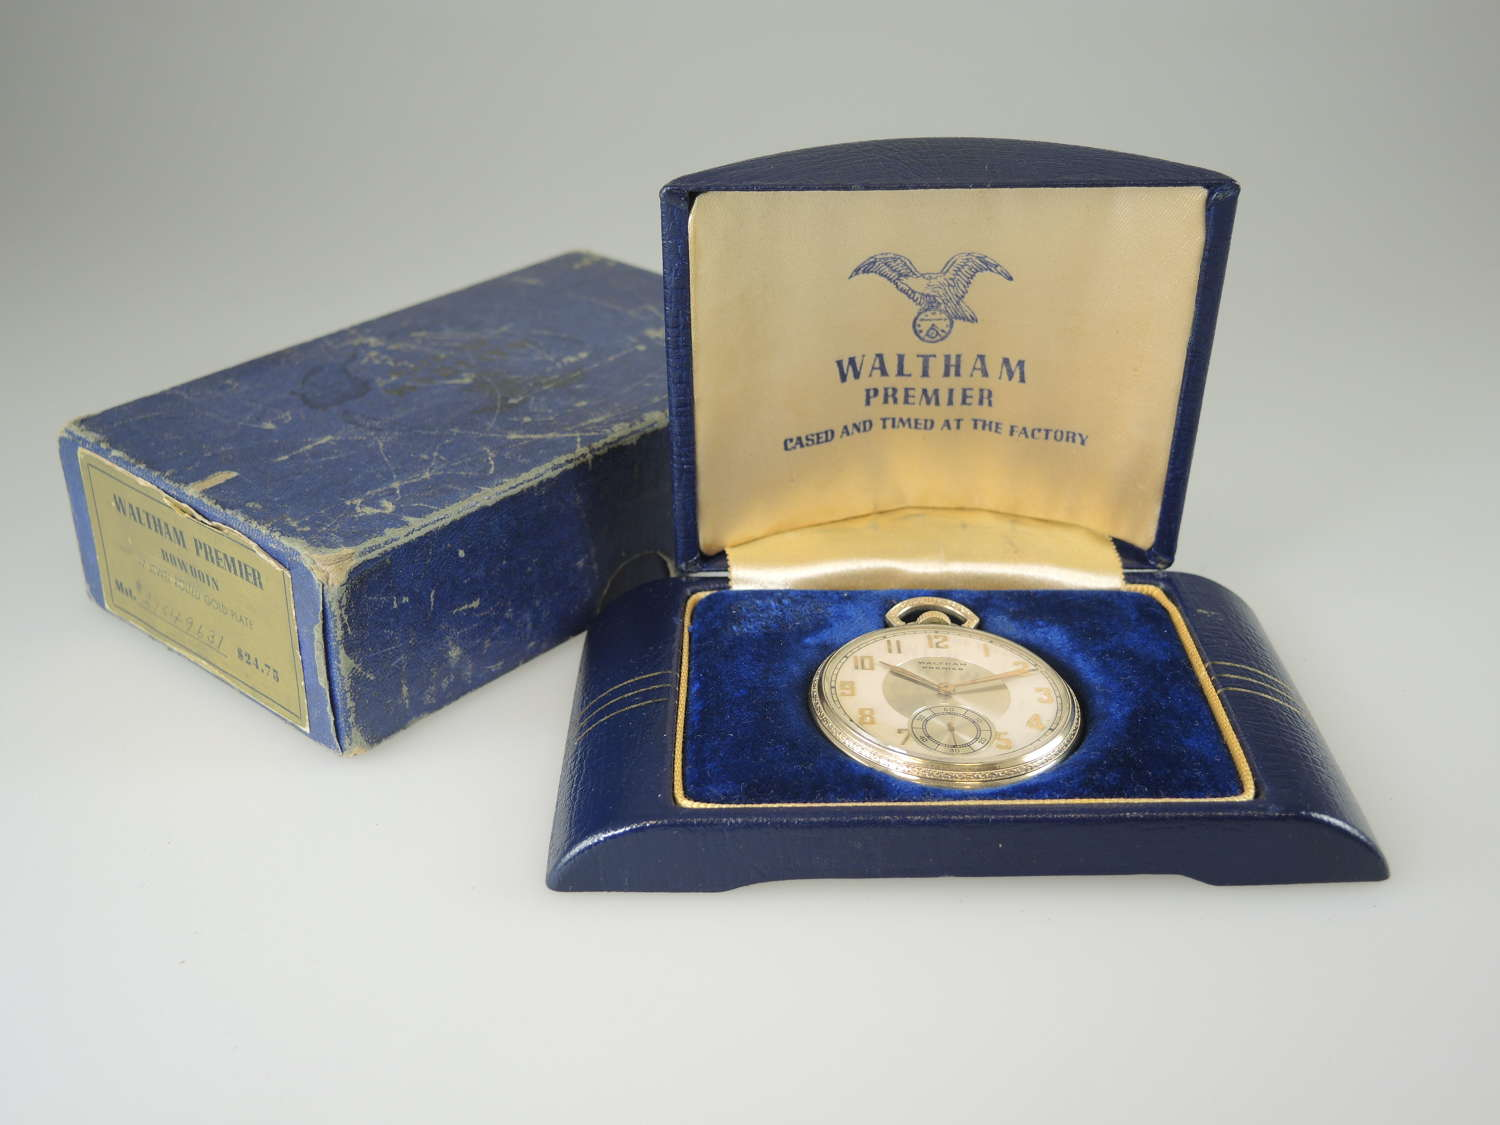 17 Jewel Waltham Premier with Original Box and cardboard outer c1937